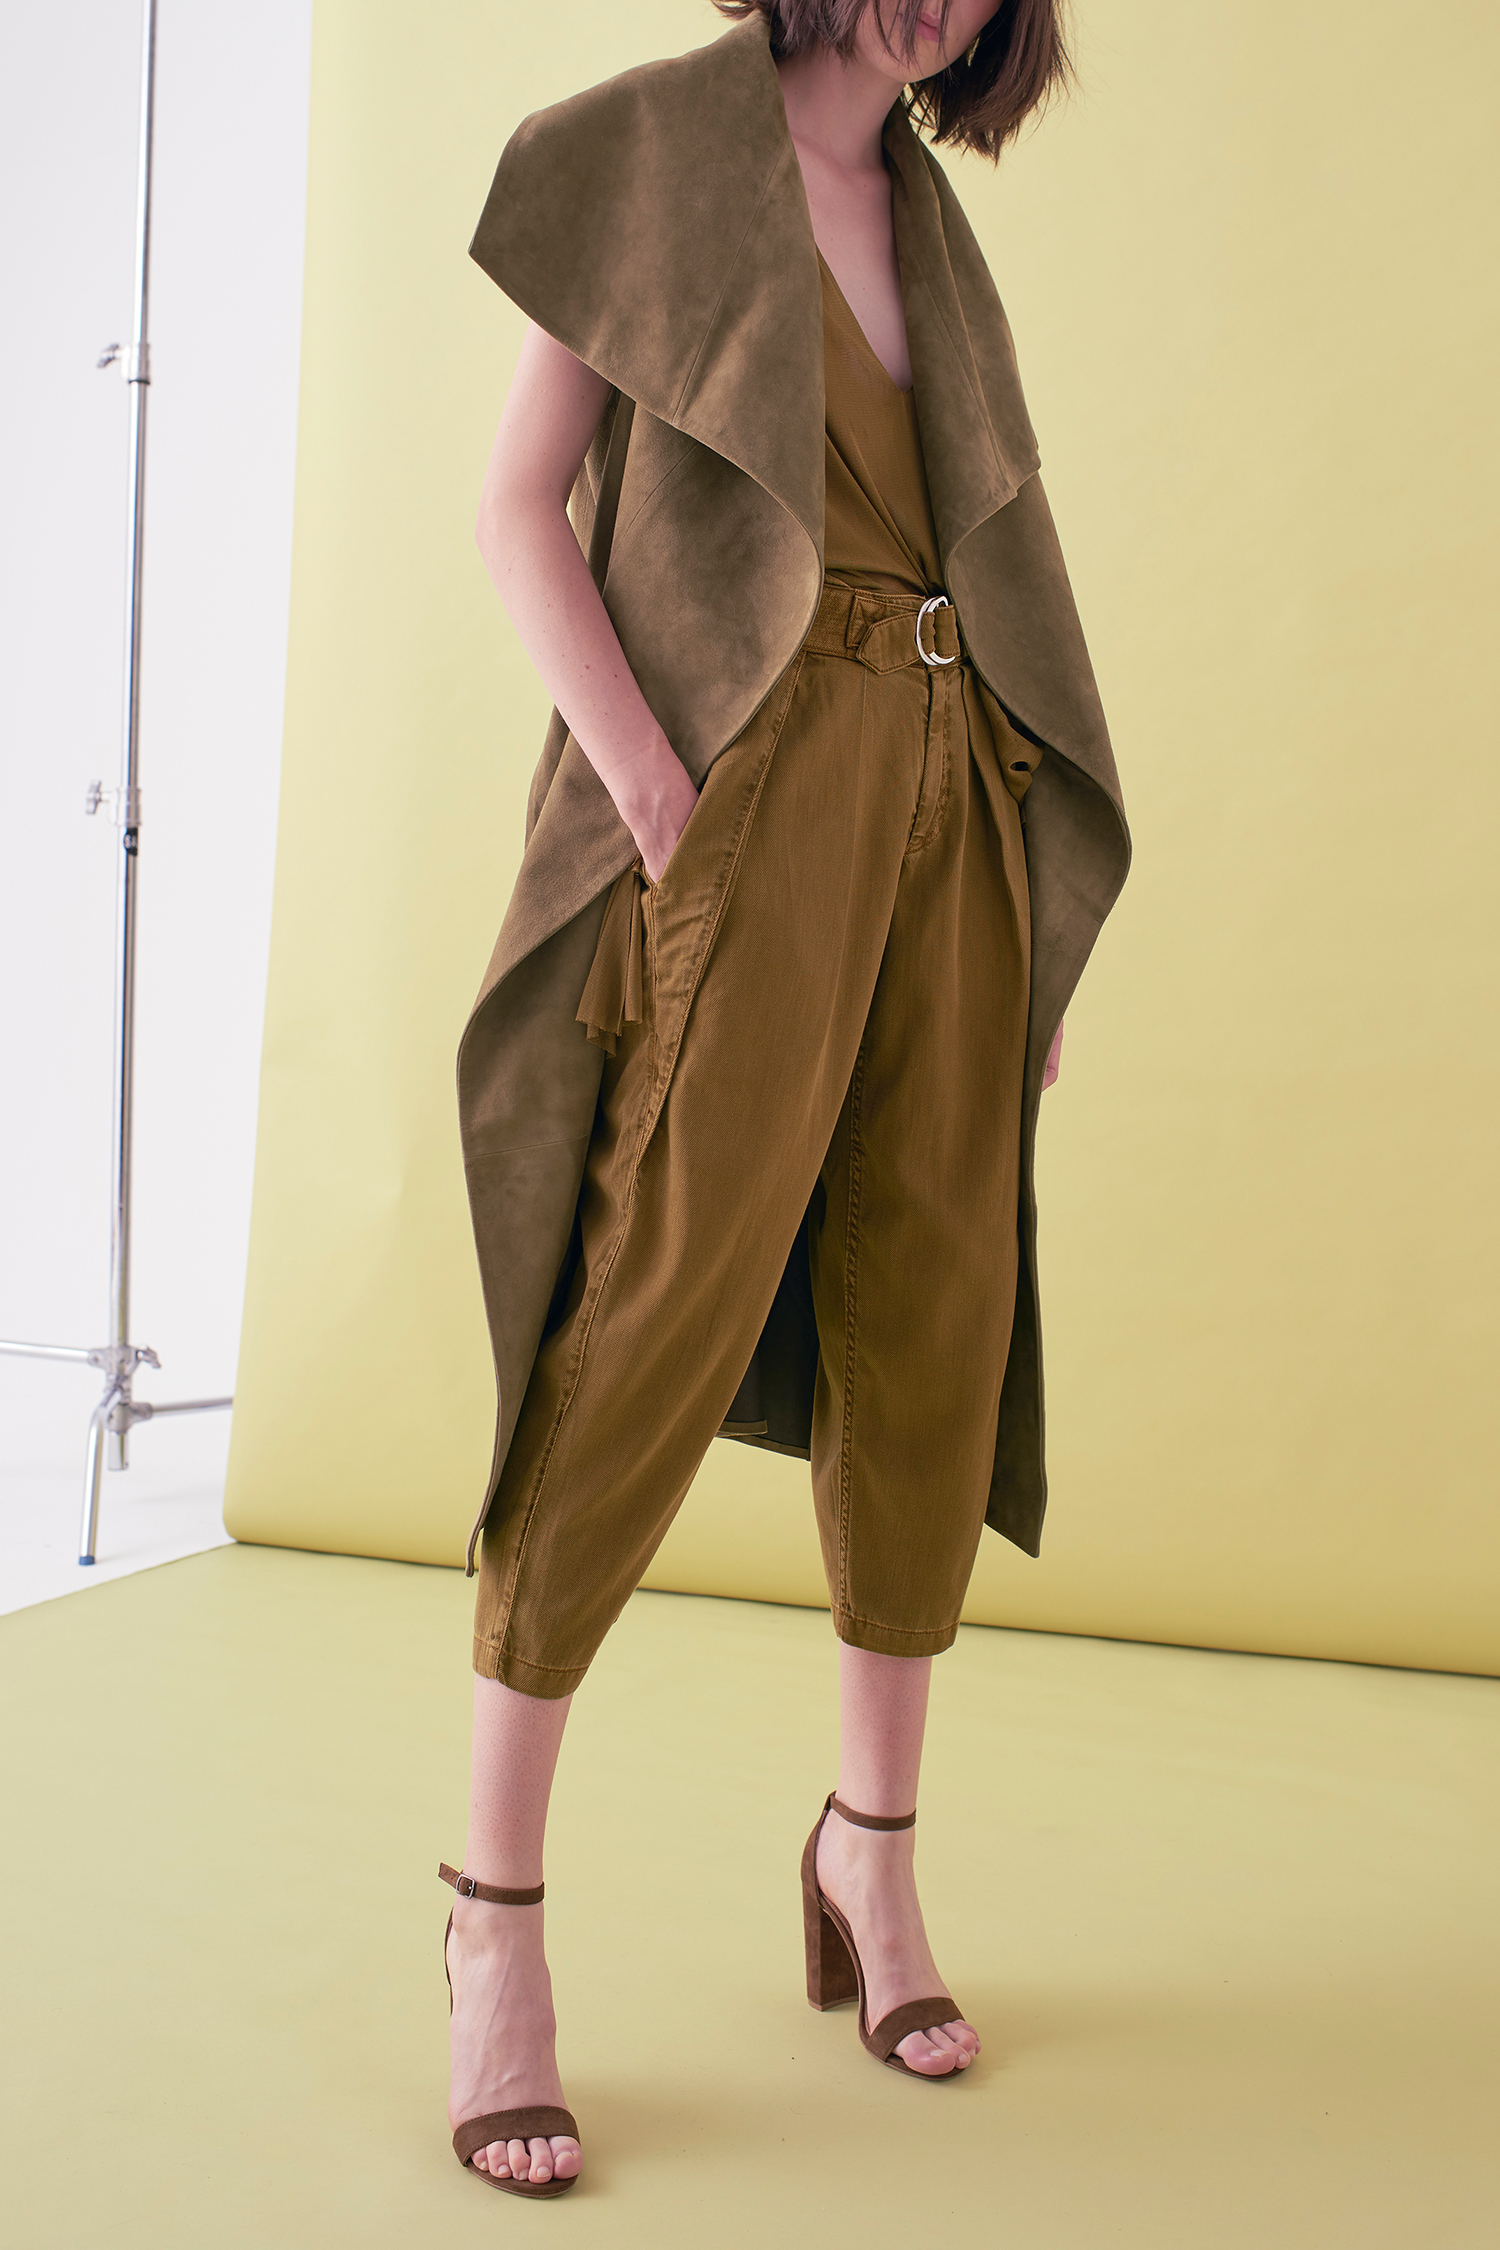 Sarah_Swann_SS17_02_Suede_Sleeveless_Long_Jacket_Olive_F01.jpg